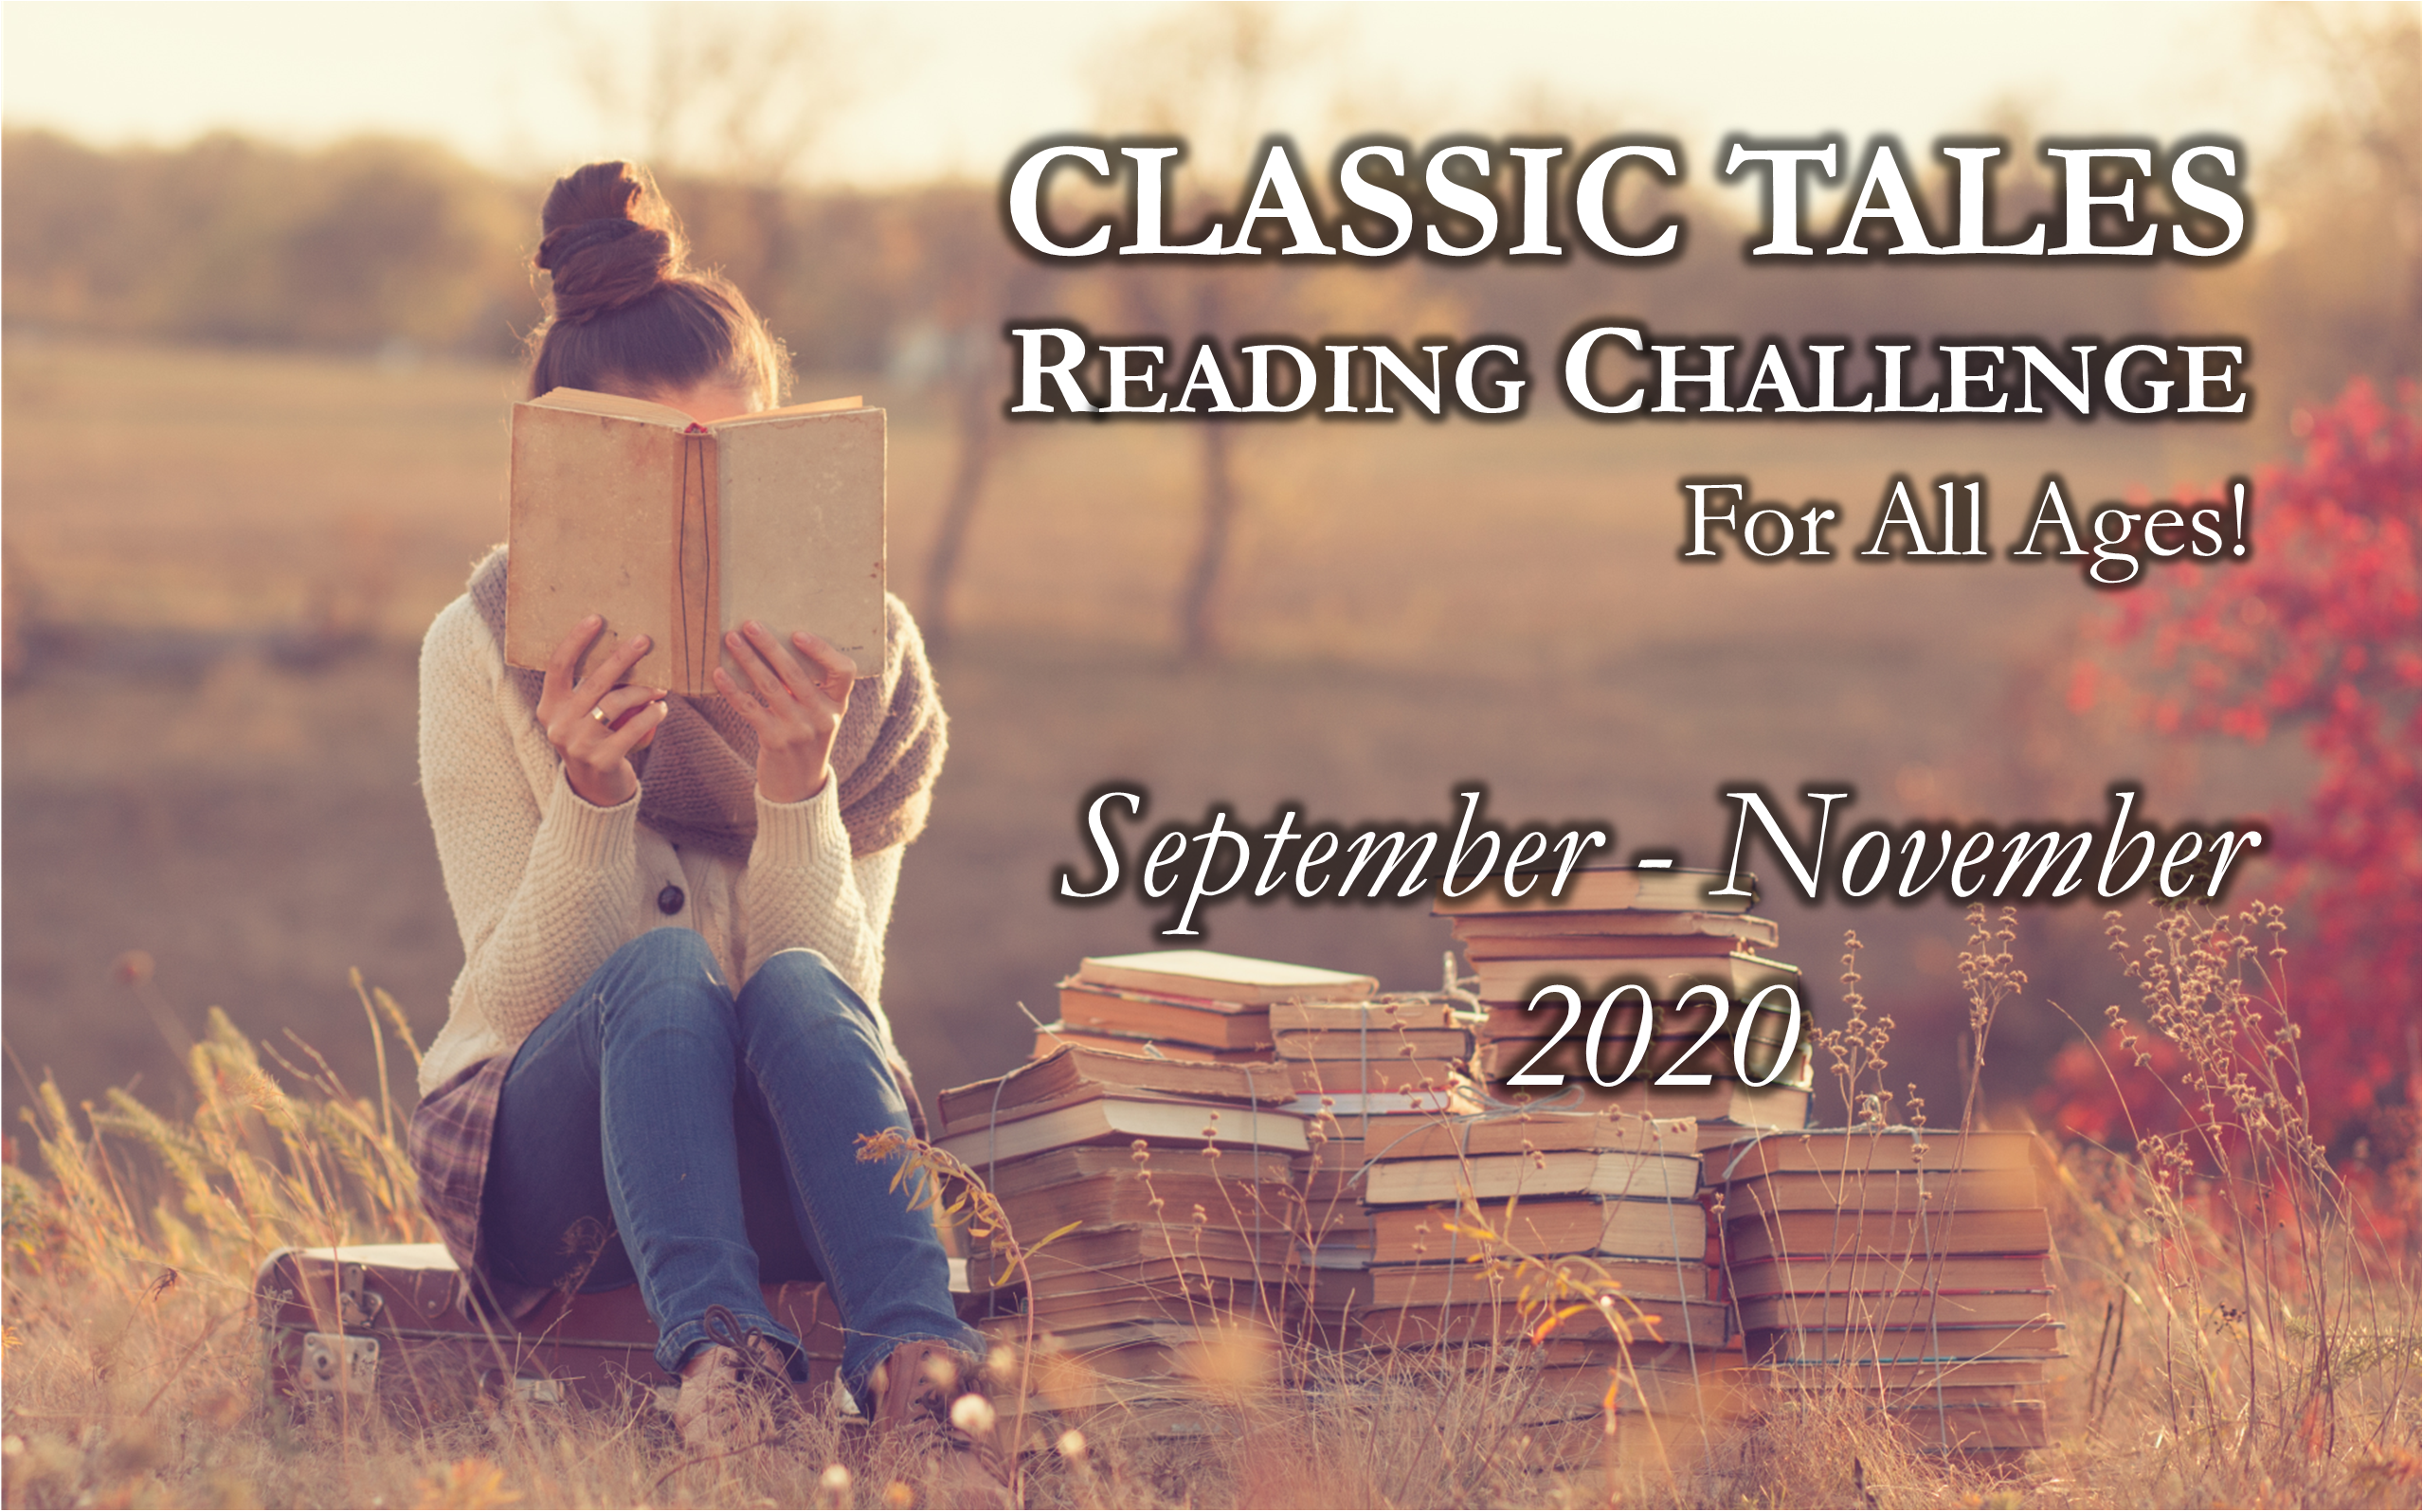 Classic Tales Reading Challenge